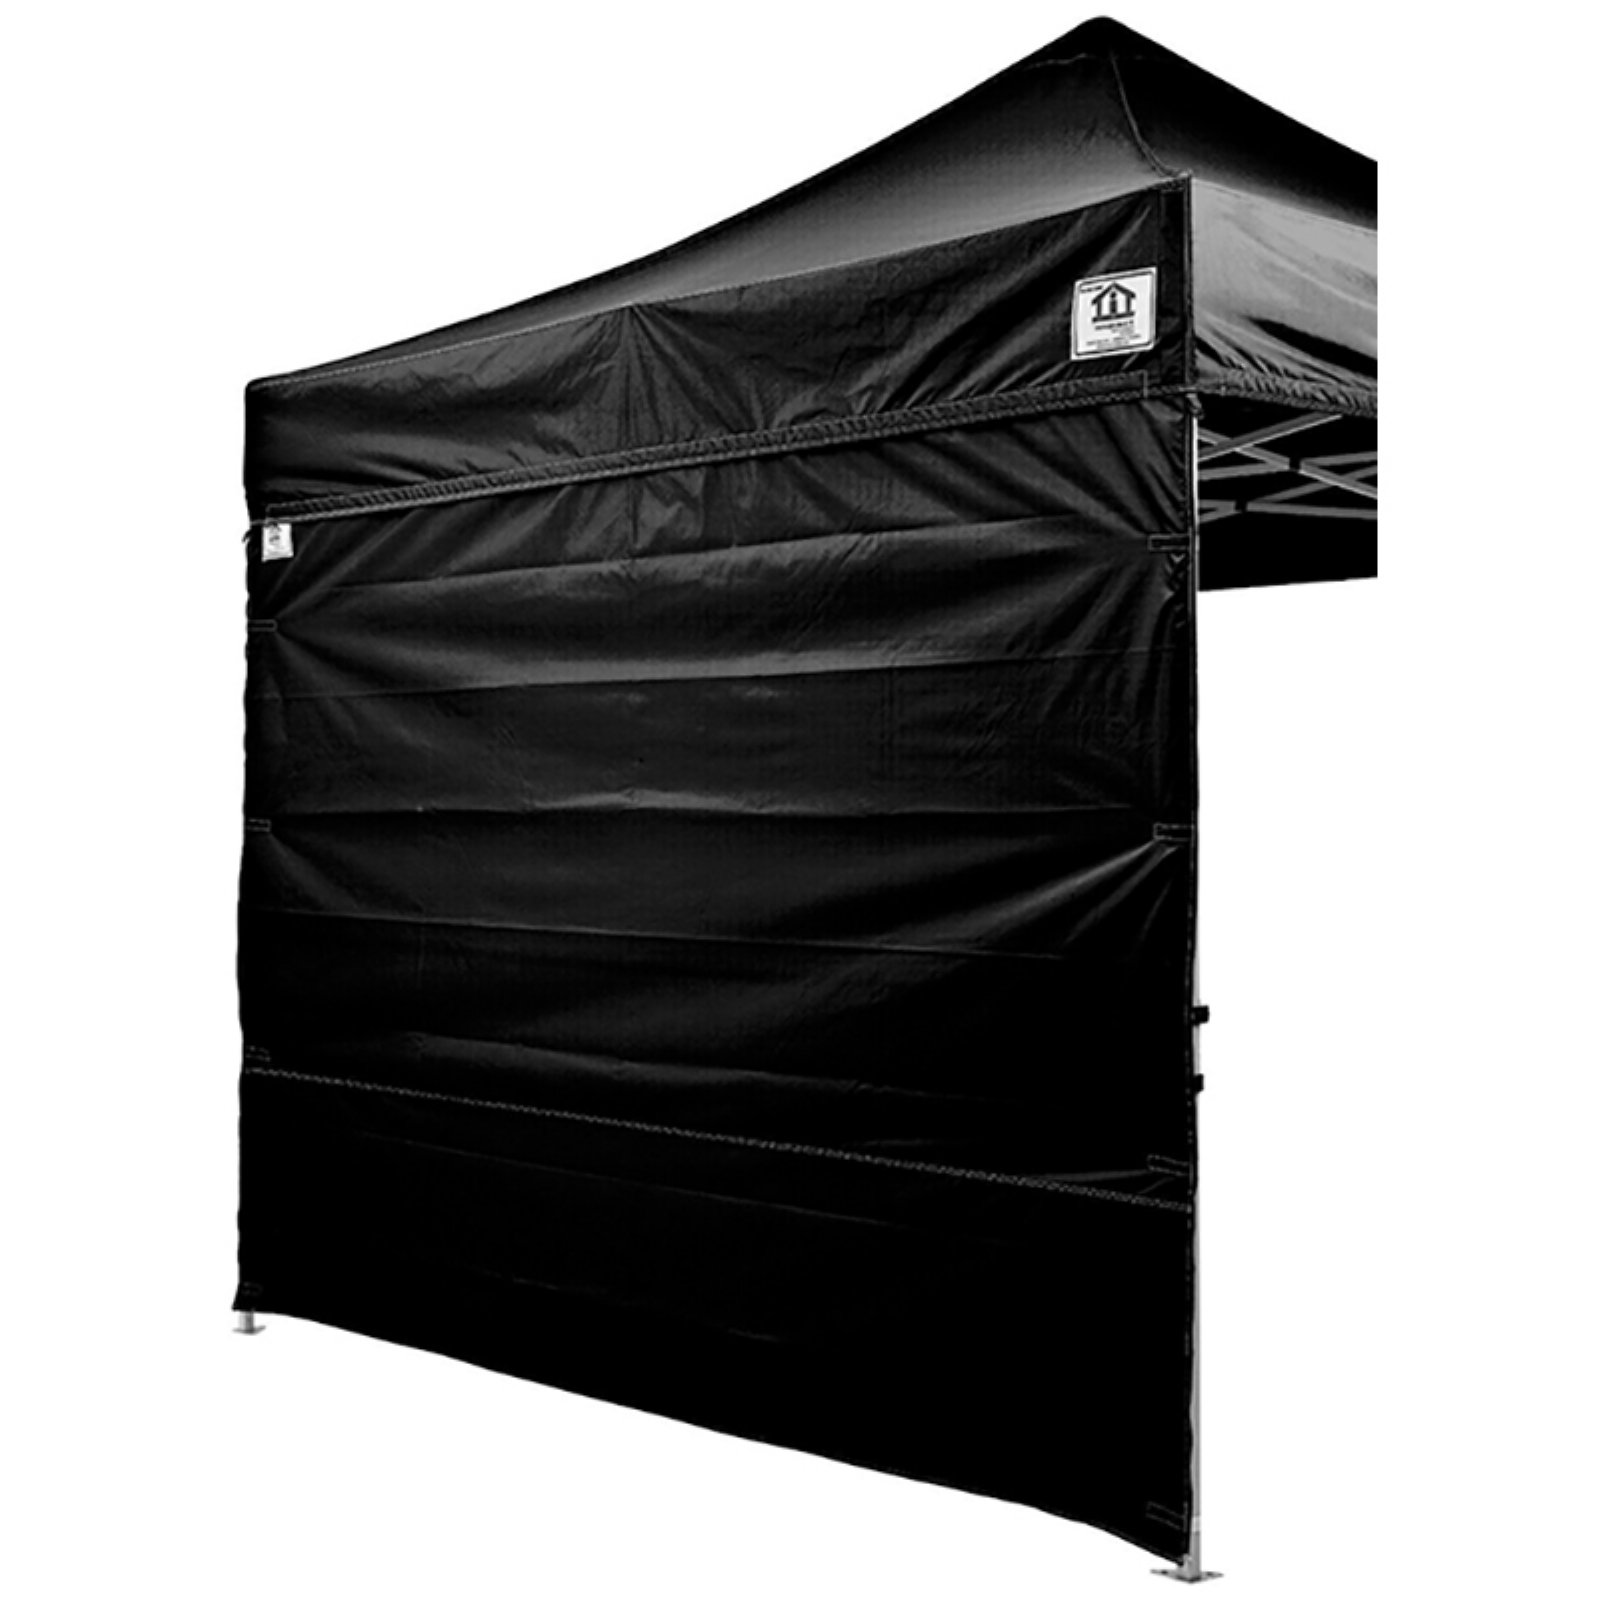 Impact Canopy Alumix 10x10 ft. Ez Pop Up Canopy Tent Instant Canopy With Roller Bag  sc 1 st  Walmart & Impact Canopy Alumix 10x10 ft. Ez Pop Up Canopy Tent Instant ...